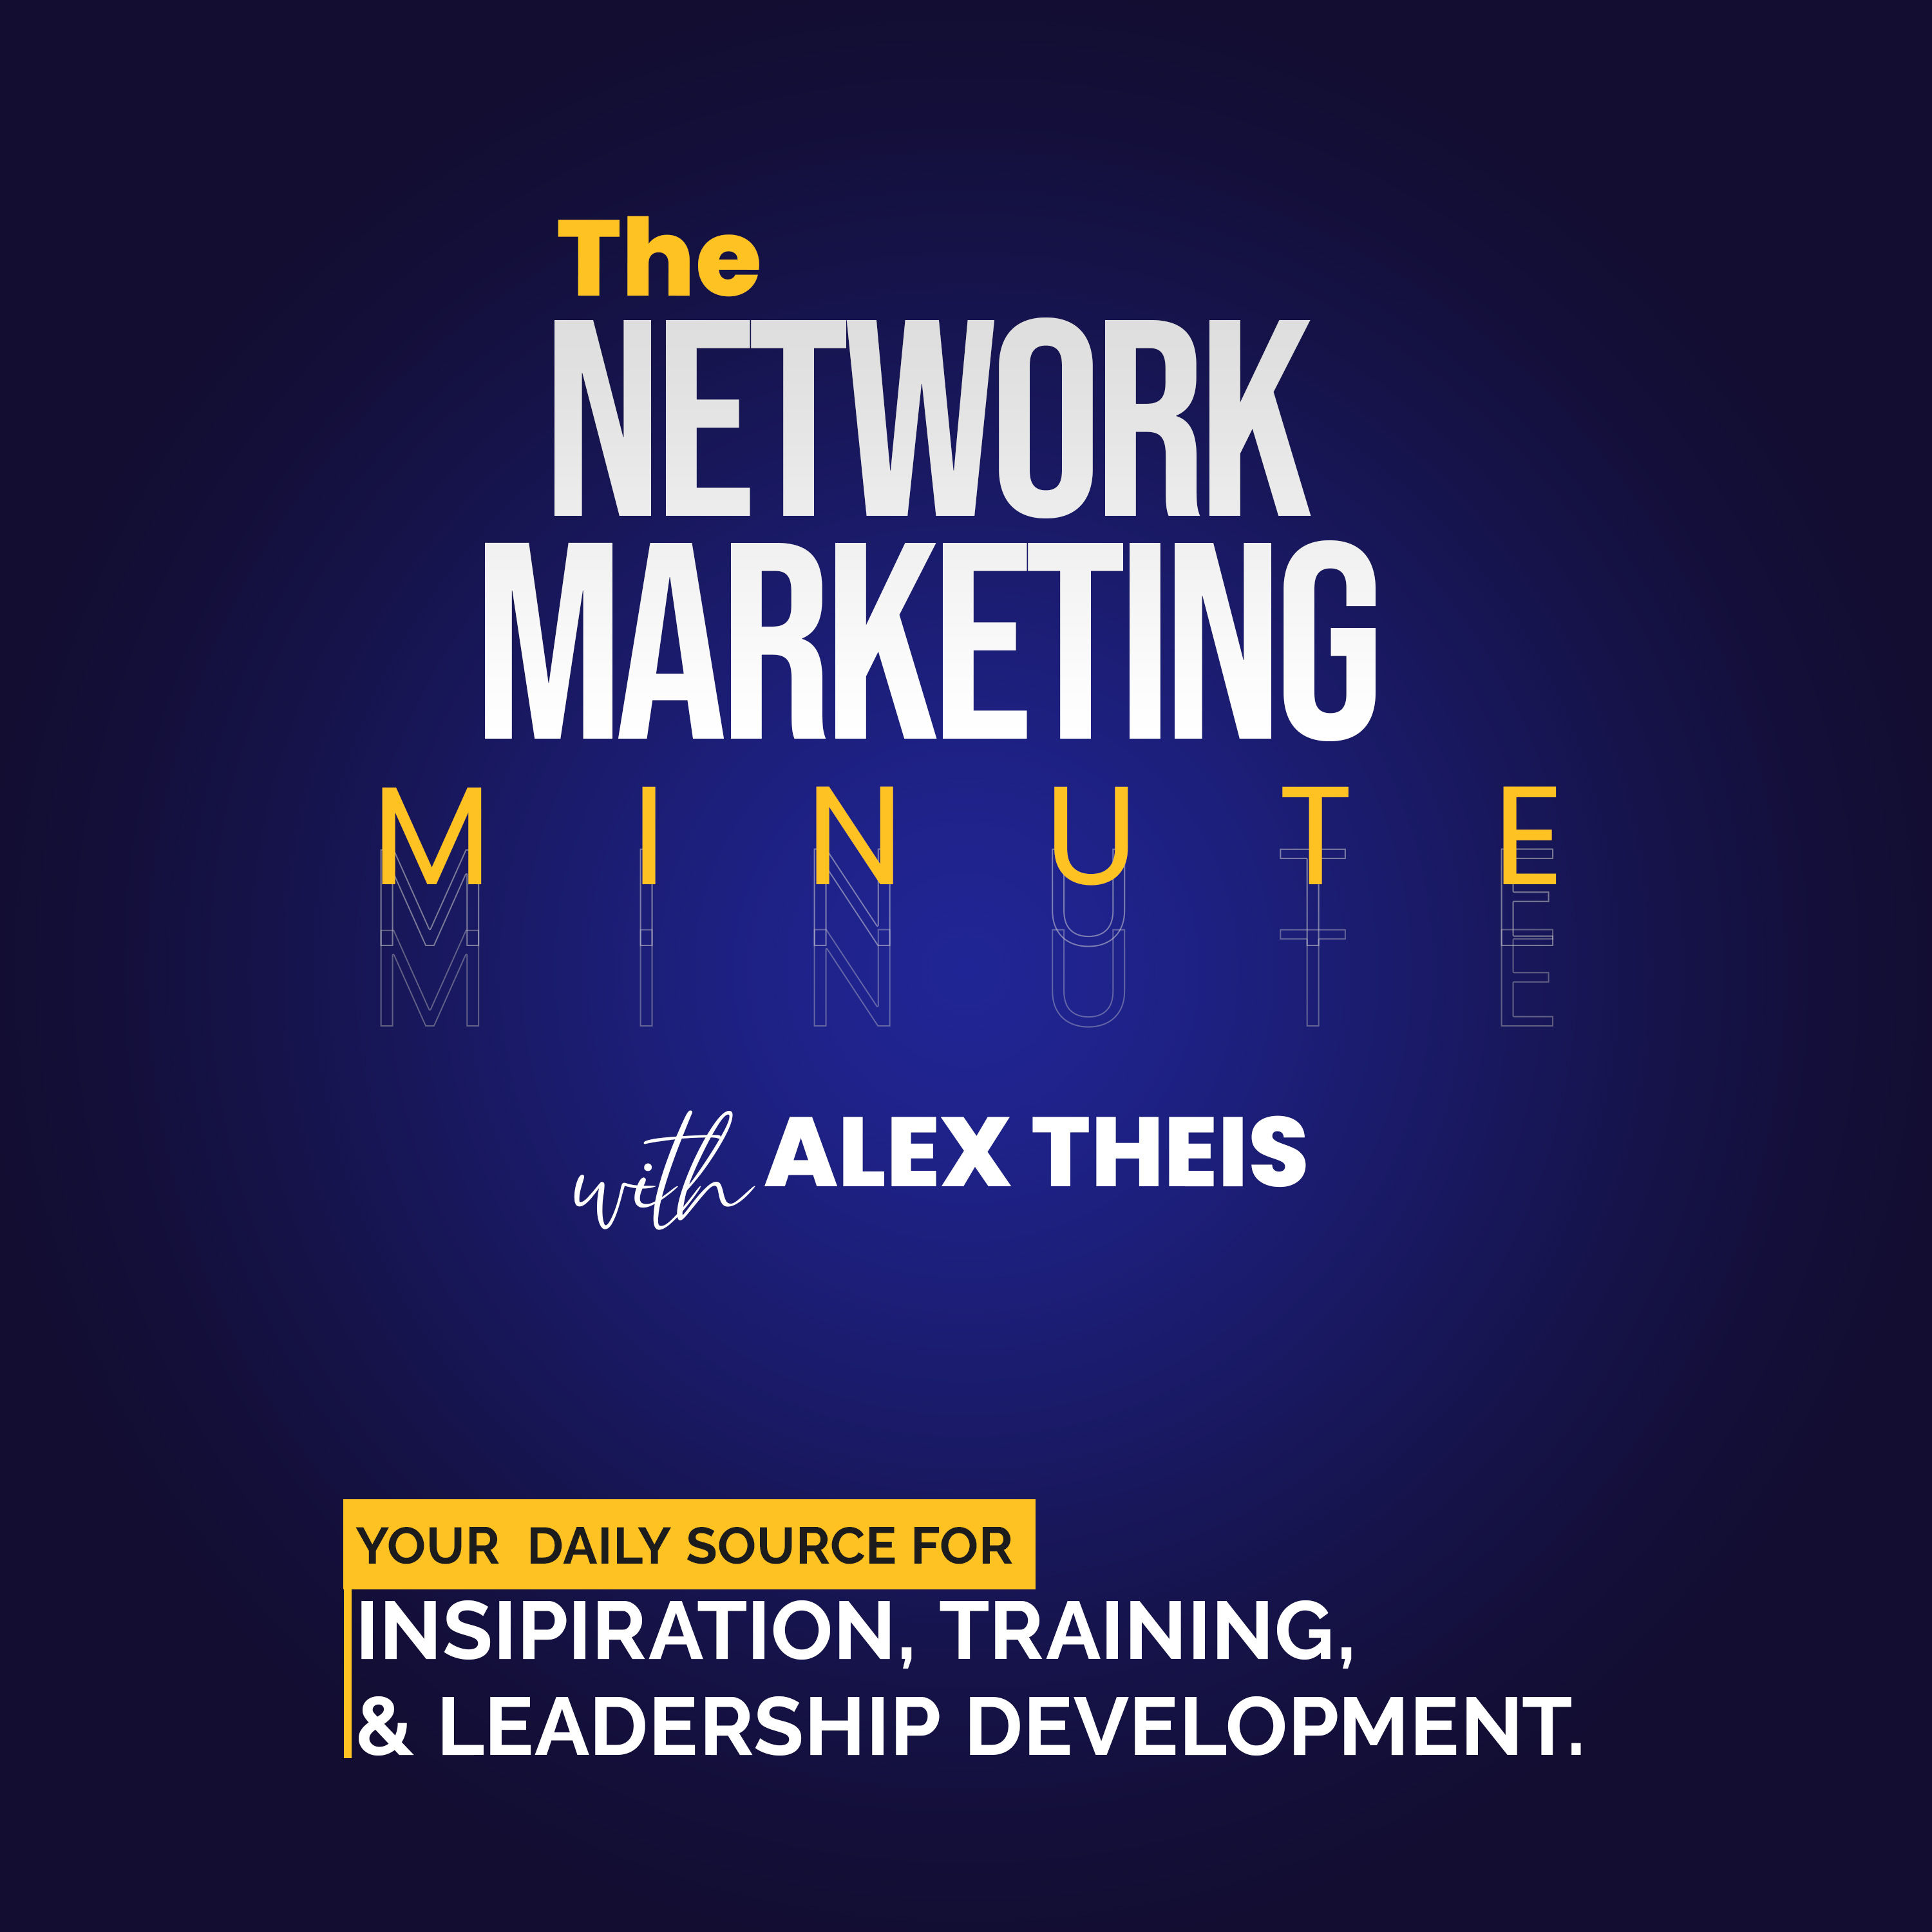 The Network Marketing Minute